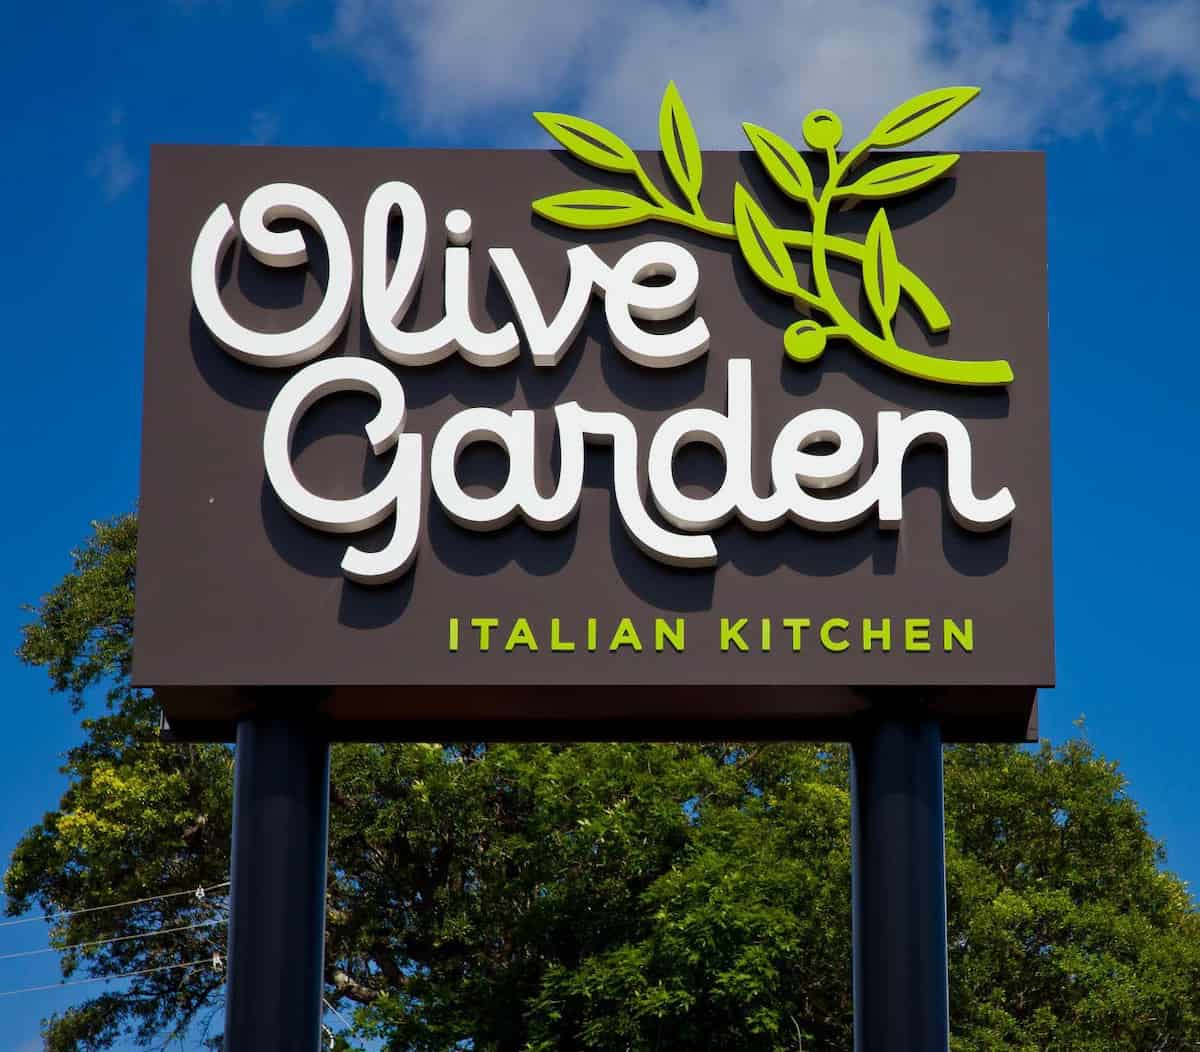 Olive Garden is coming to Costa Rica.